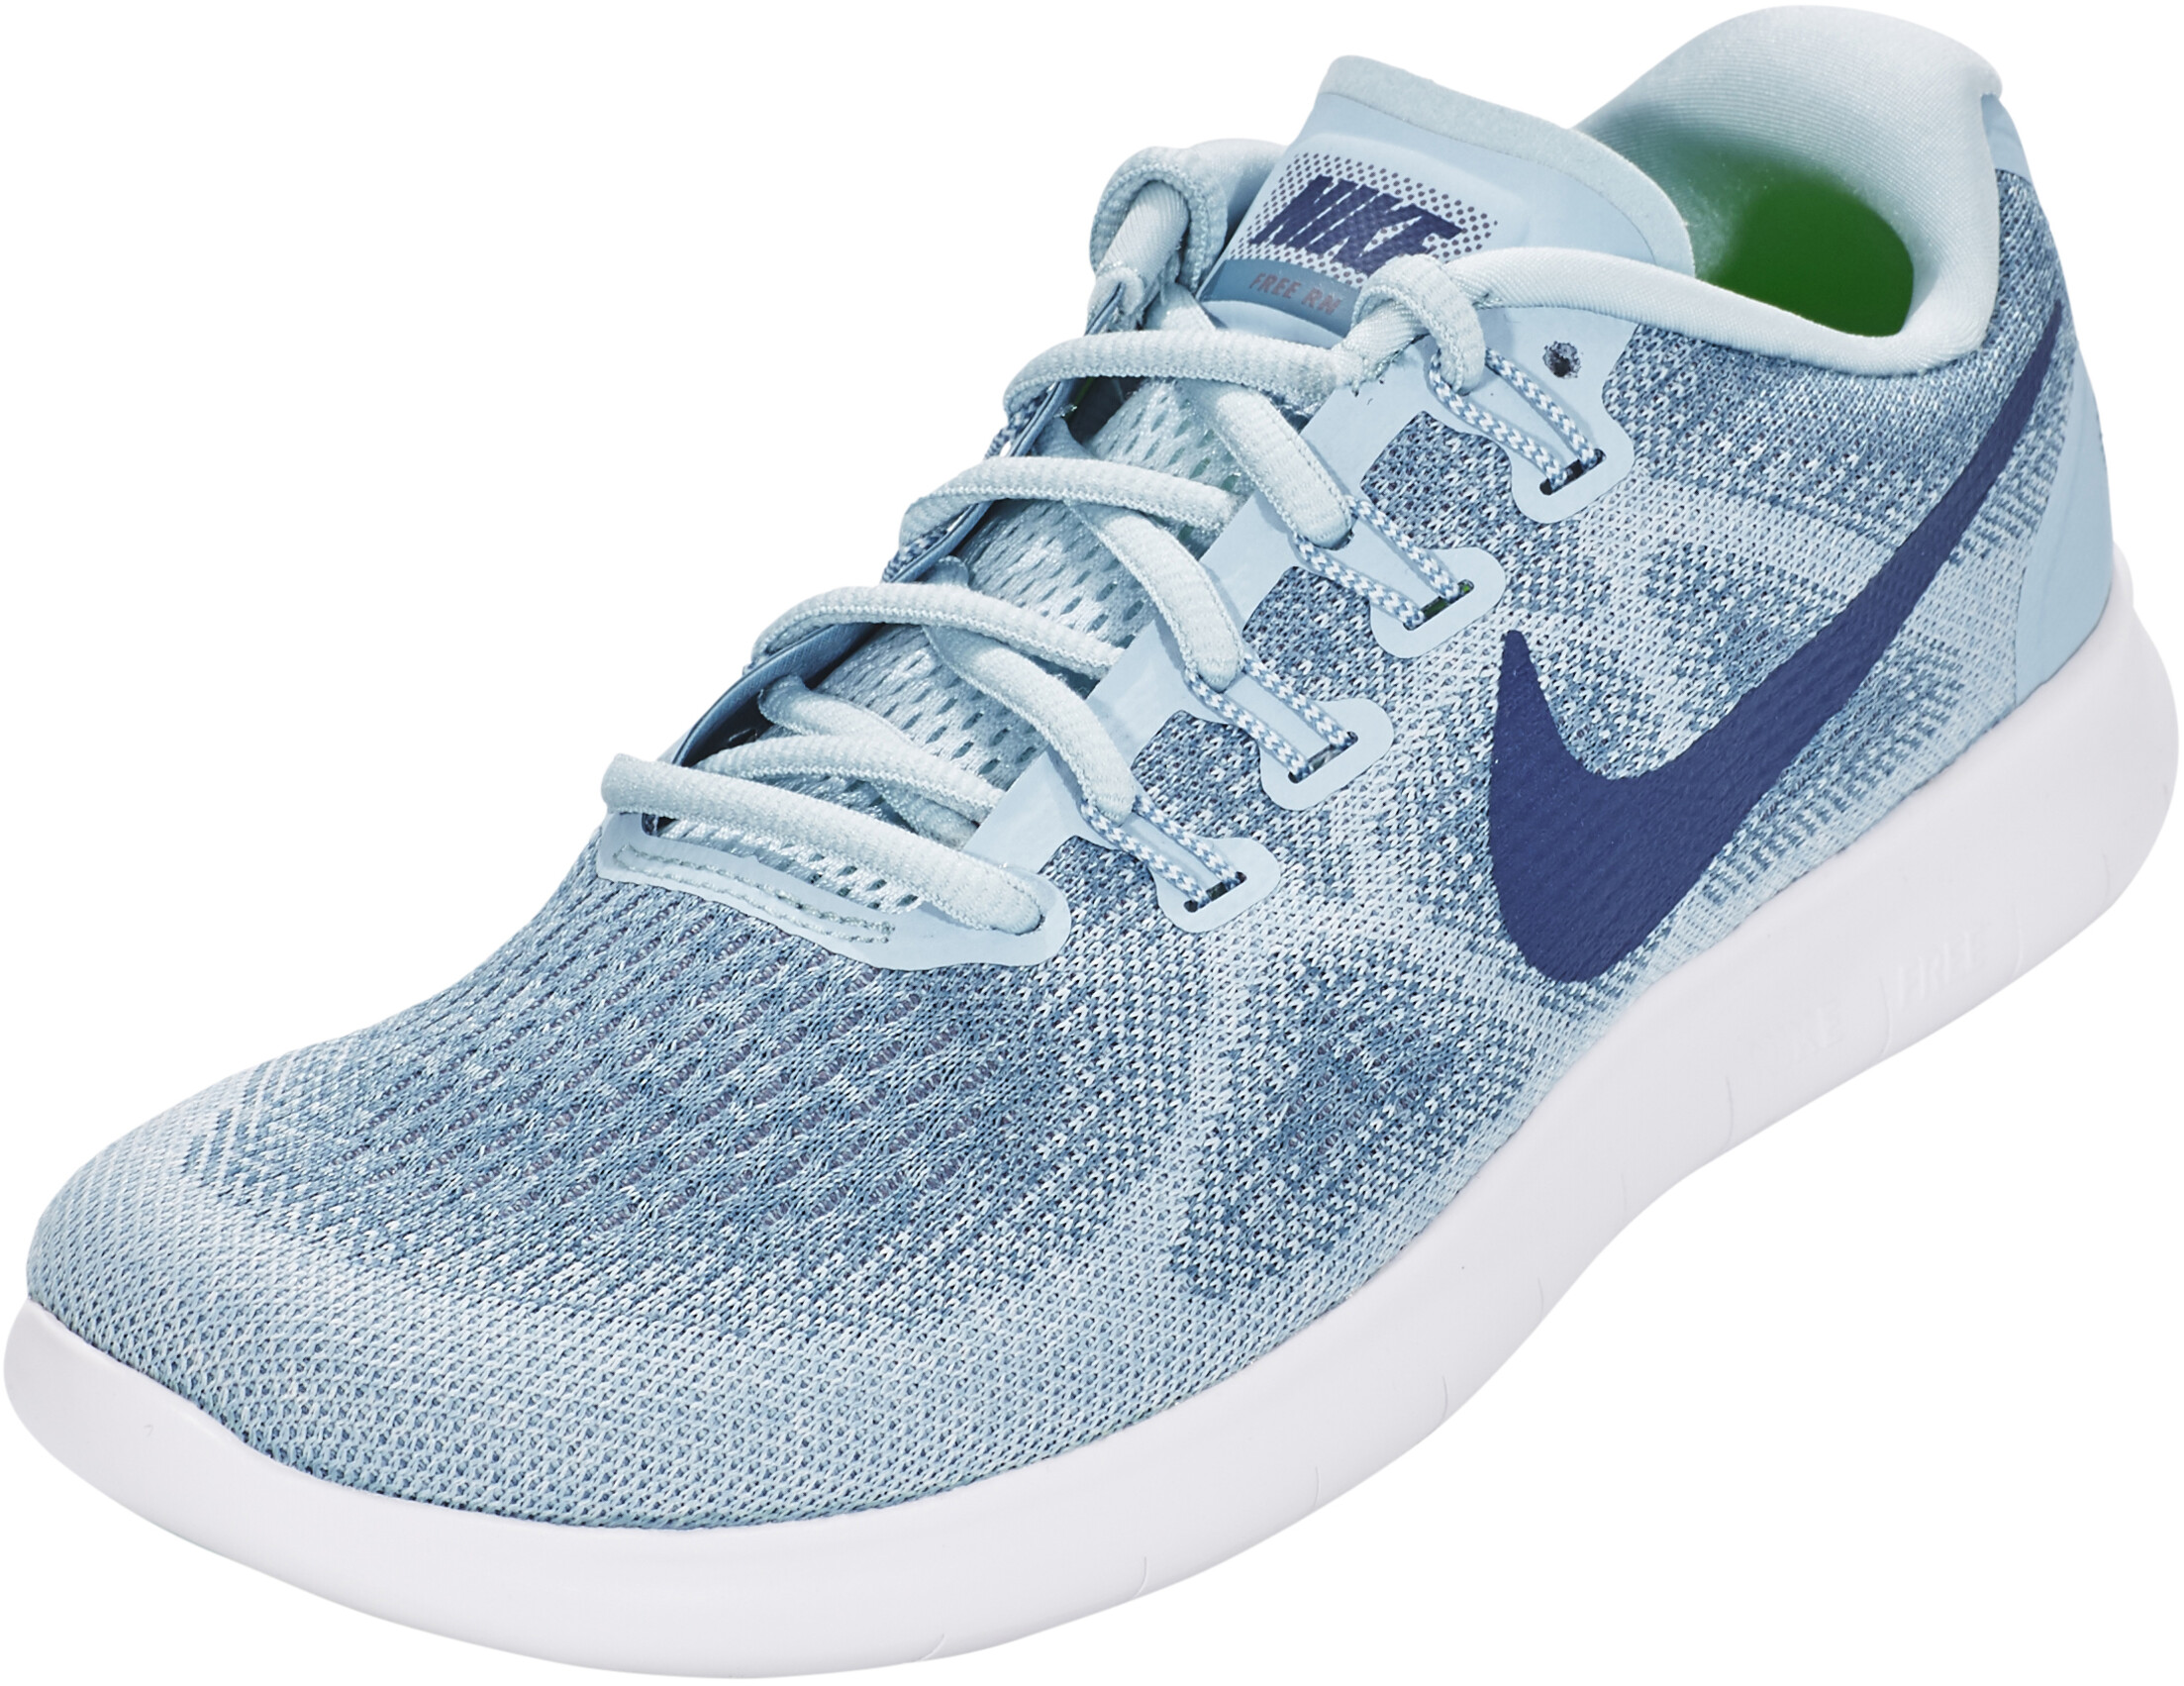 d77d556dbb98 Nike Free RN 2017 Running Shoes Women blue at Addnature.co.uk